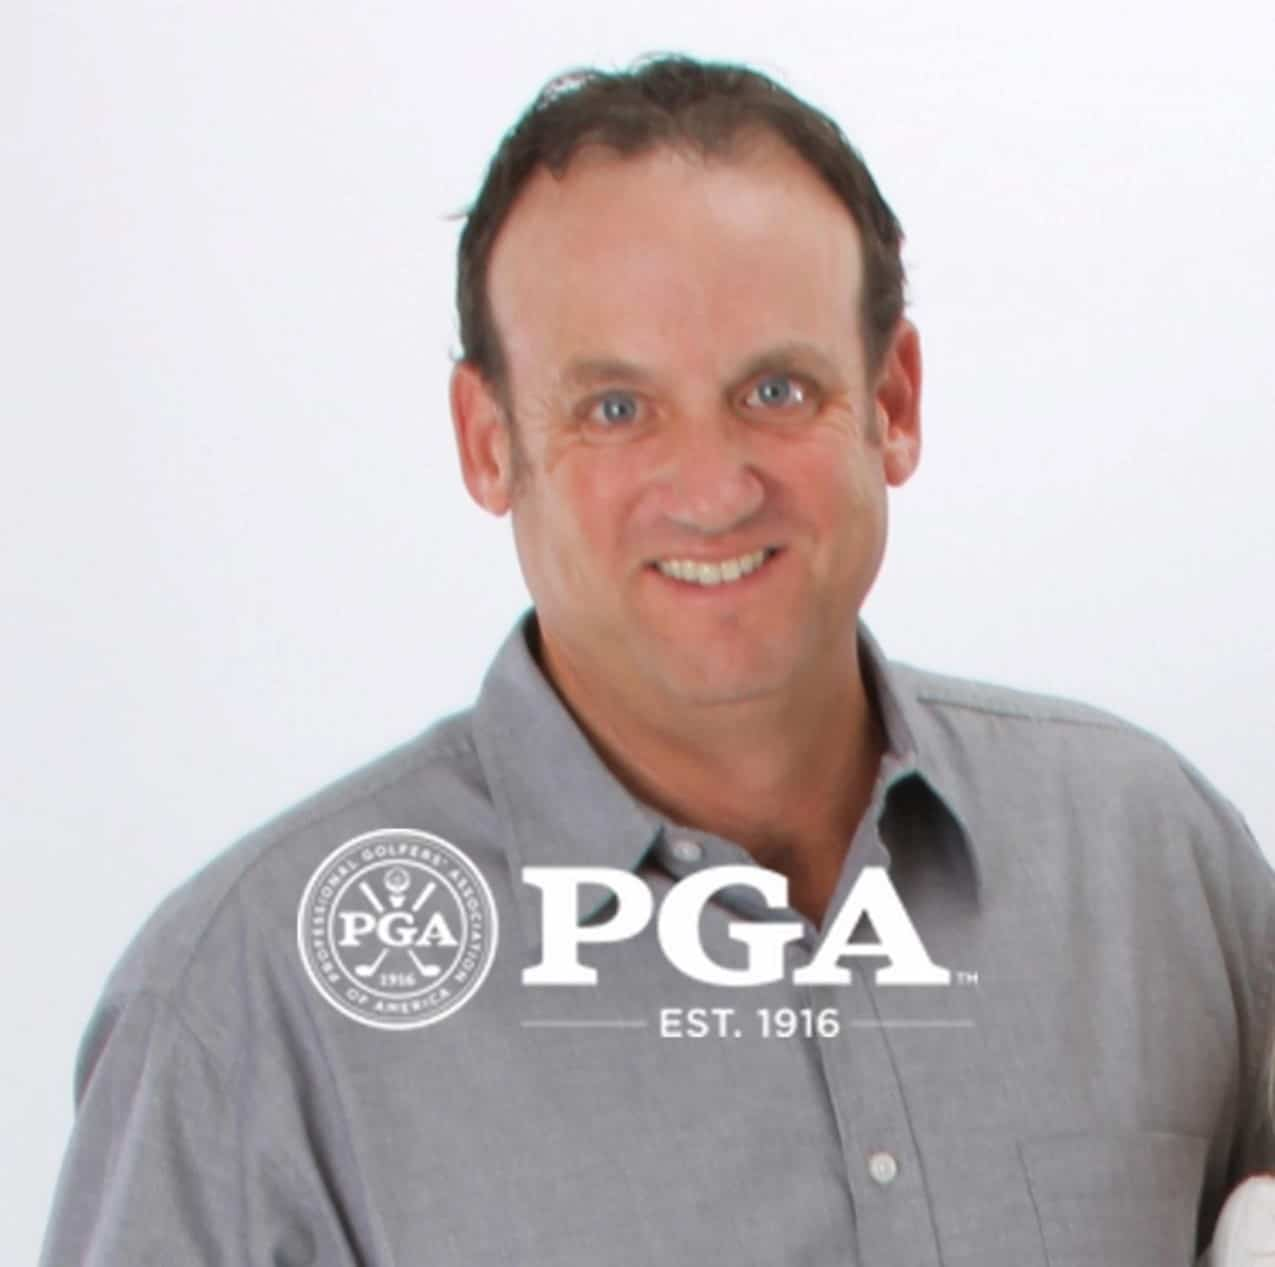 Photo of one of America's Top 100 Club Fitters Brian Gott